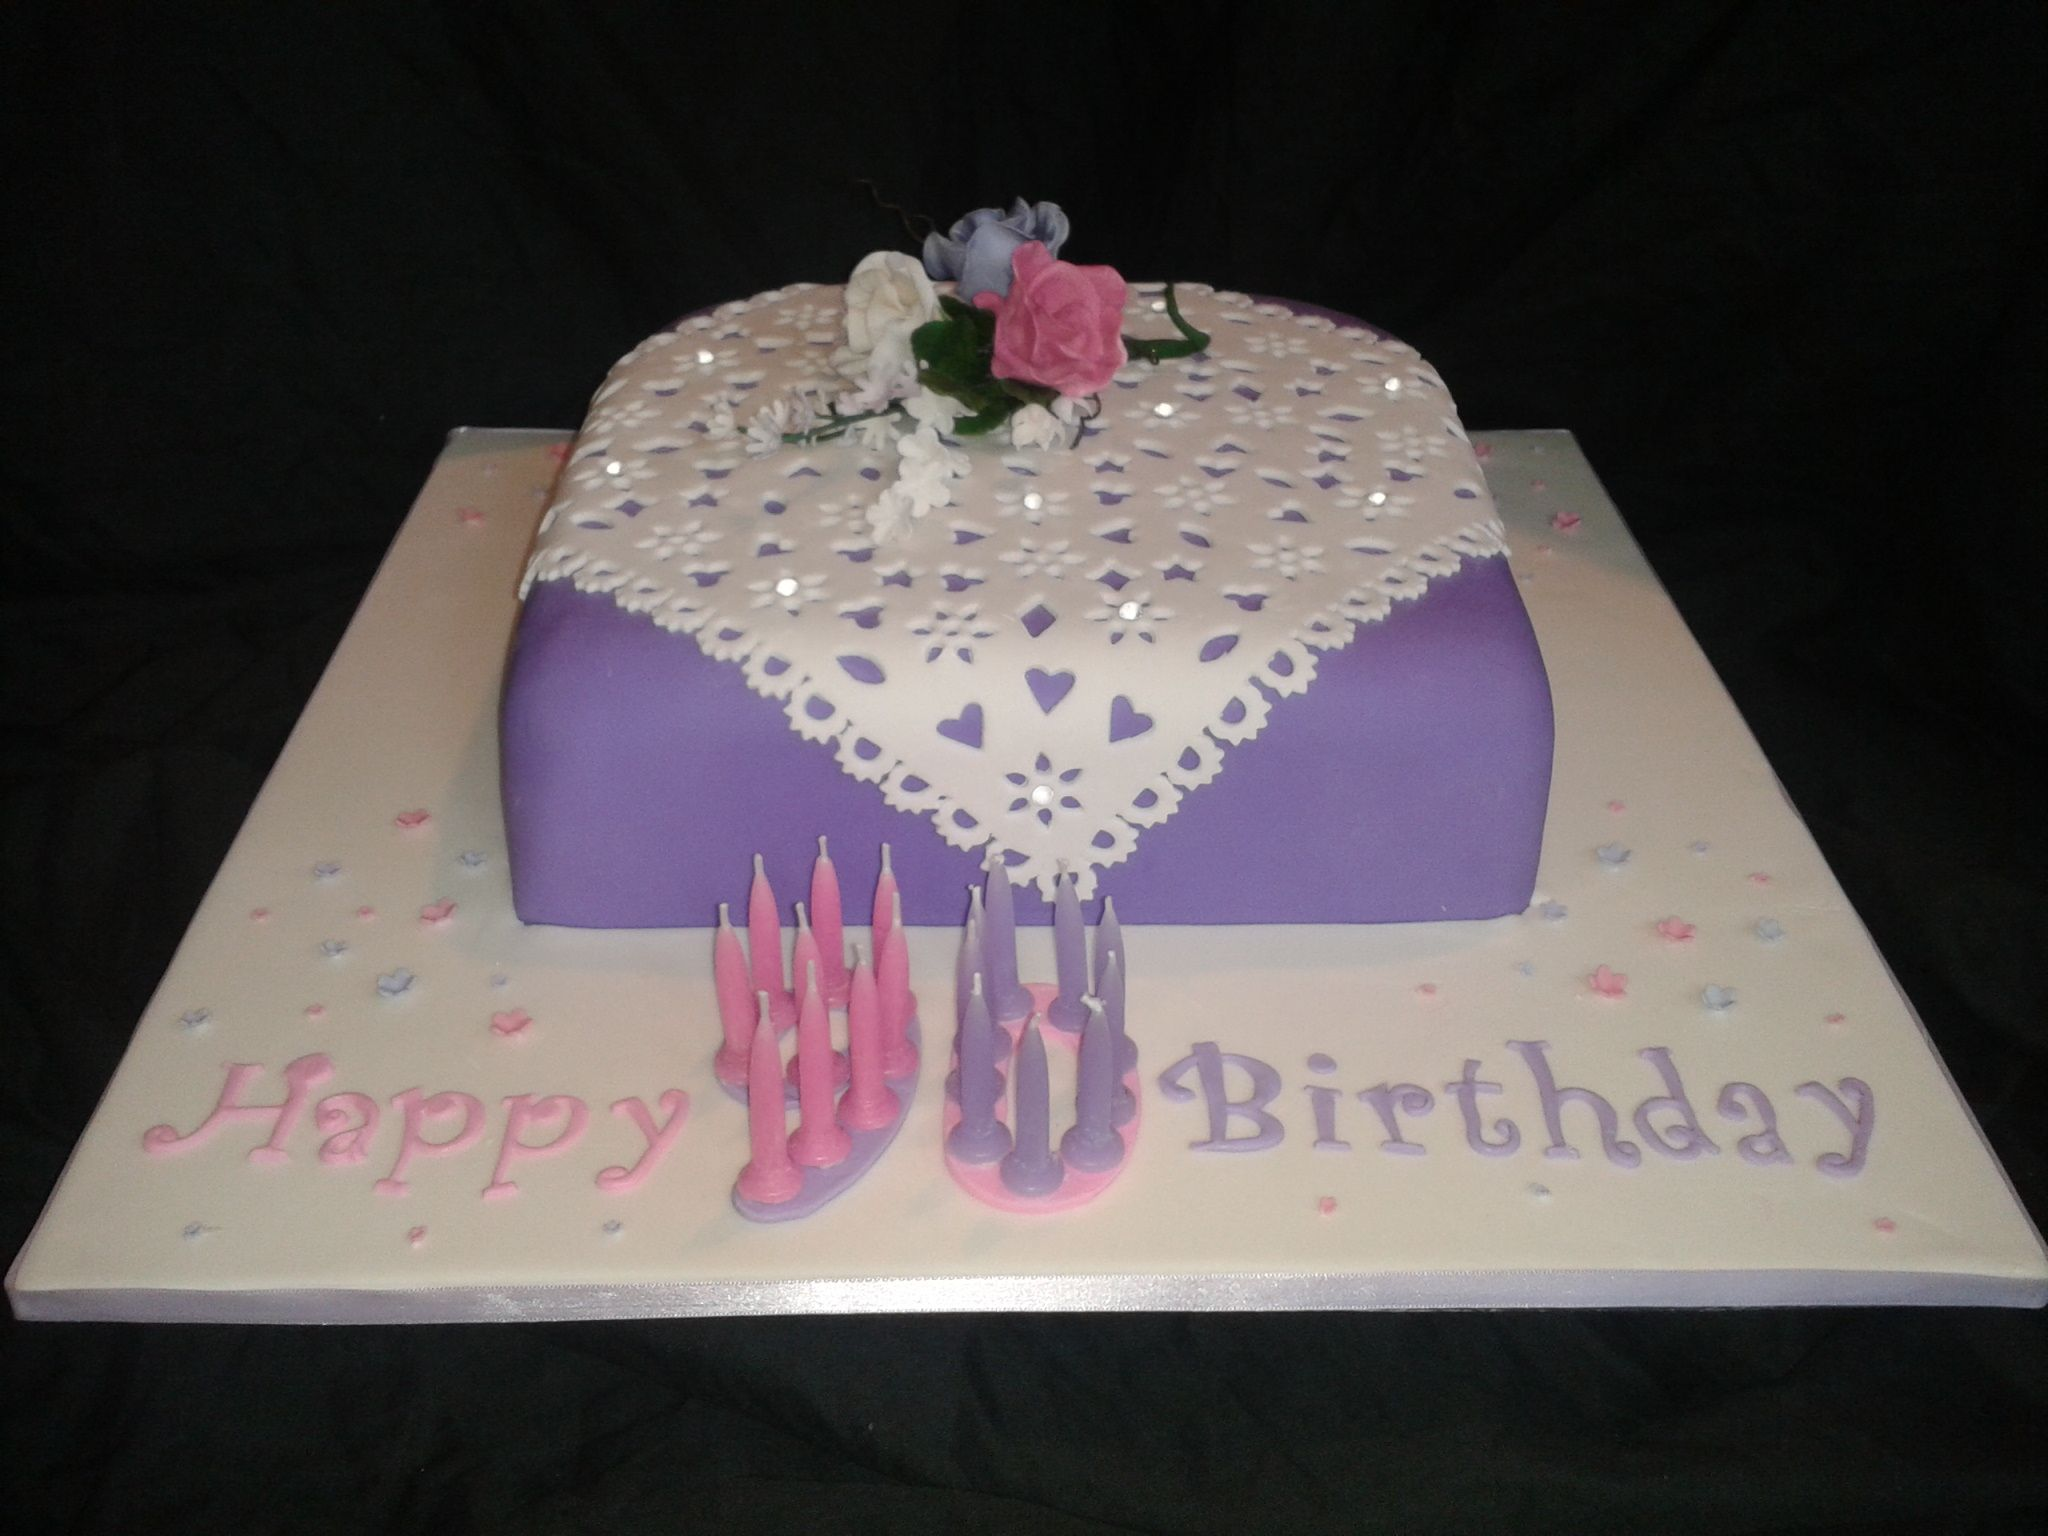 90th Birthday Cake 12 rich fruit cake covered in fondant with